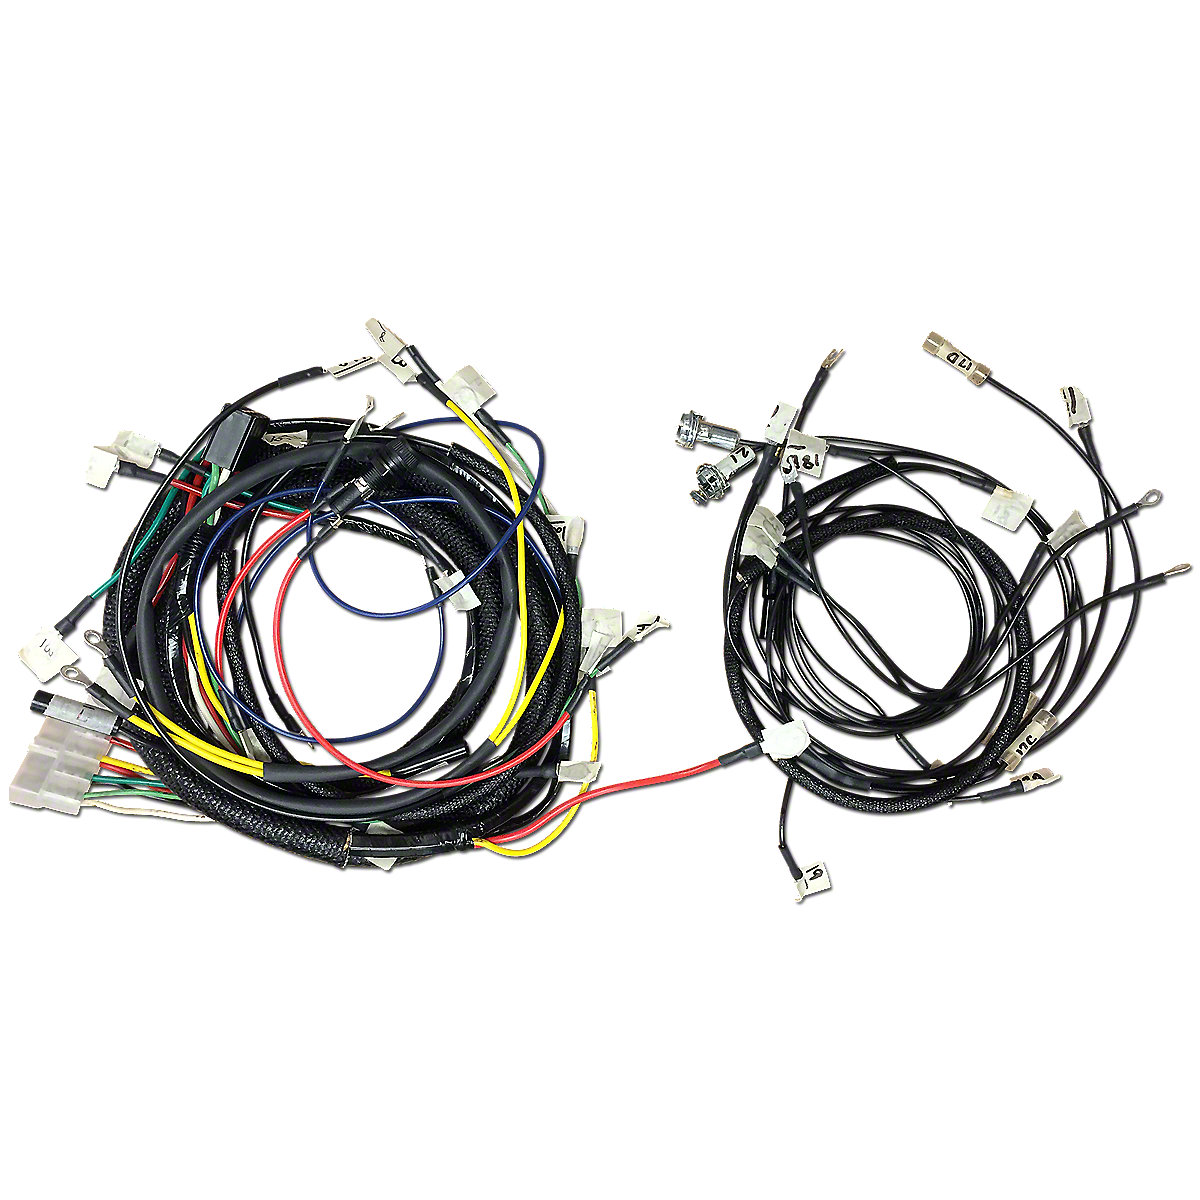 cks2875 wiring harness kit case 446 wiring harness case wiring harness #8